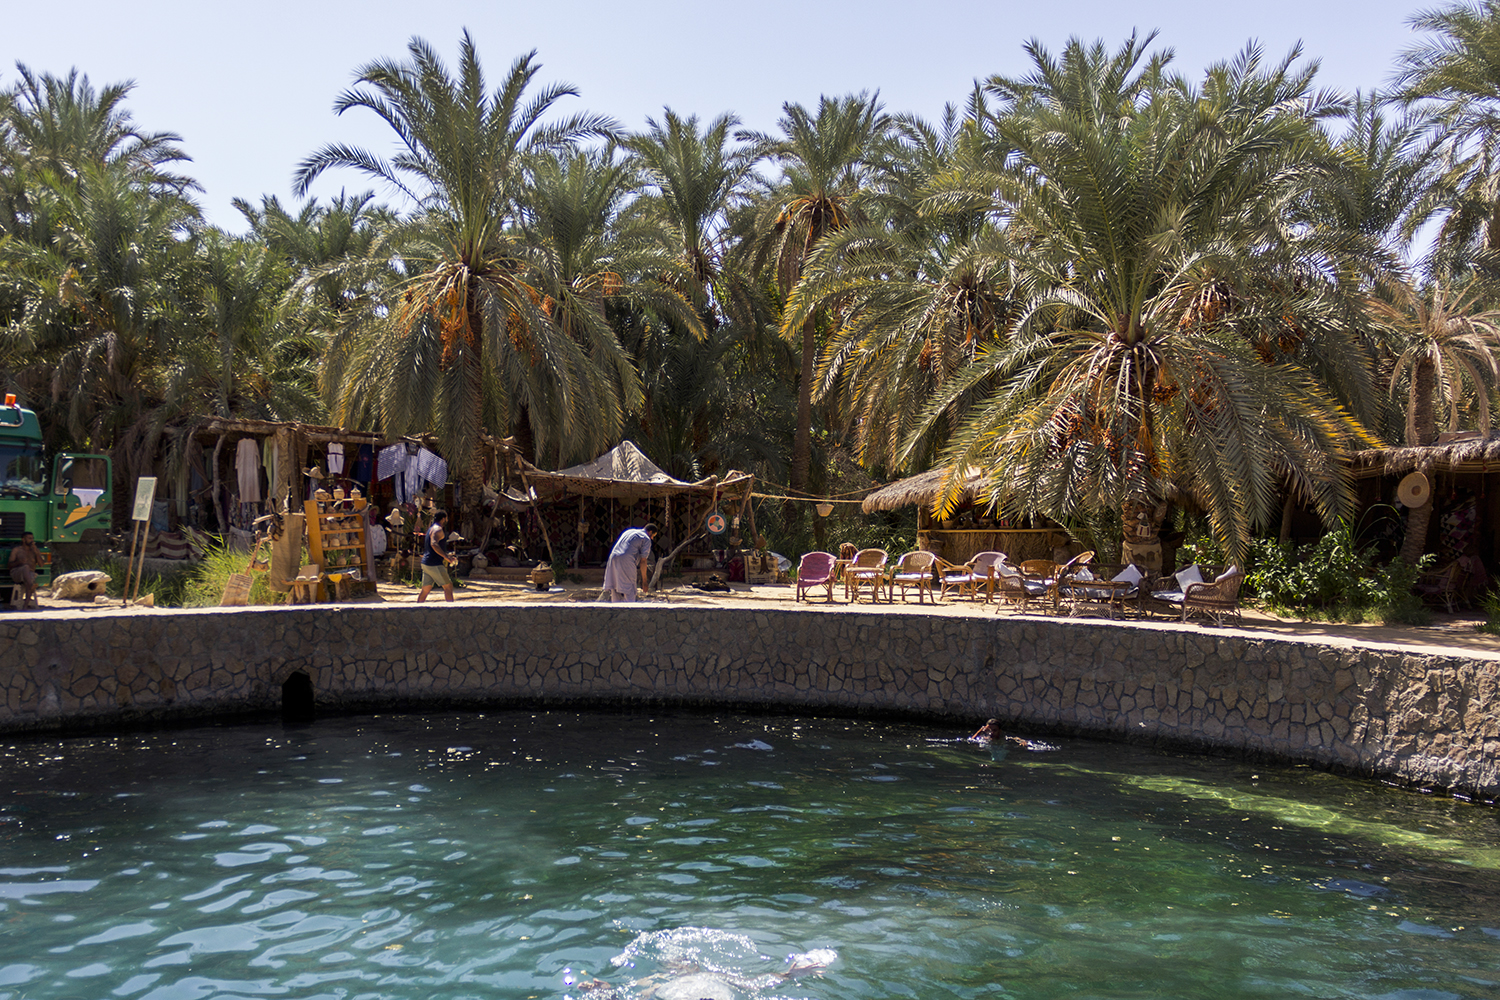 Cleopatra's bath is one of Siwa's most popular mineral springs